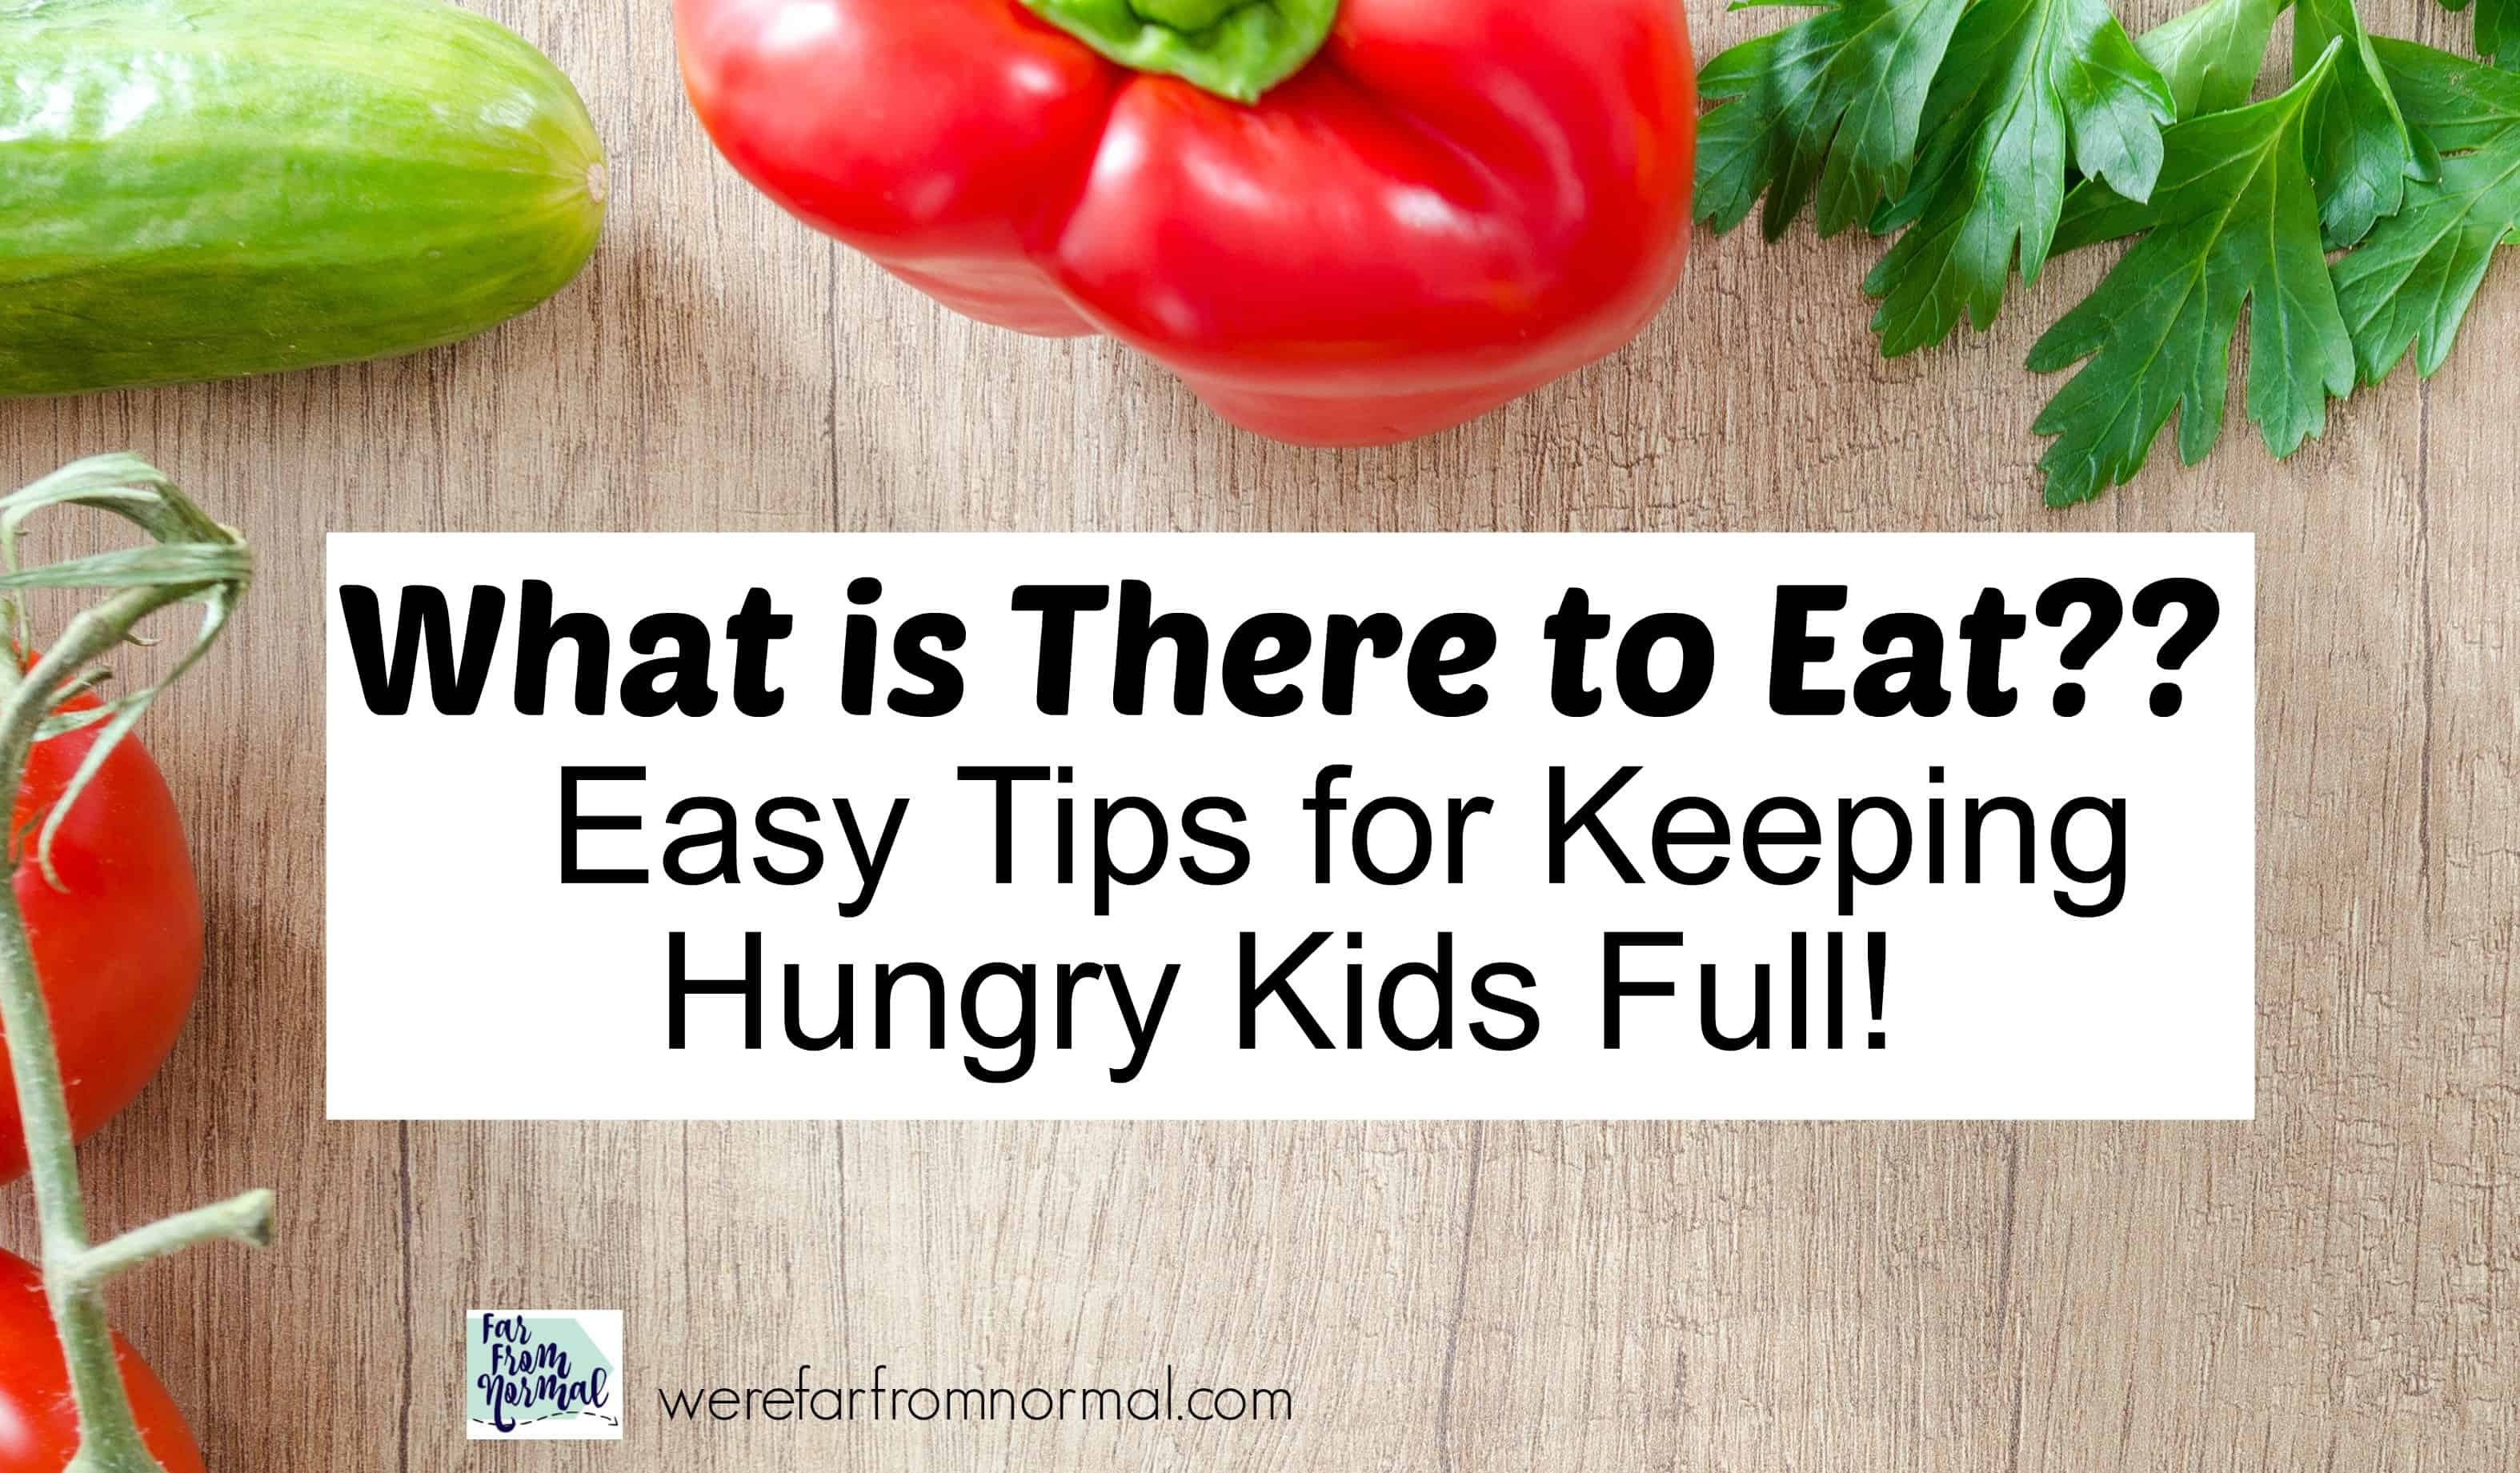 What is There to Eat? How to Keep Hungry Kids Full